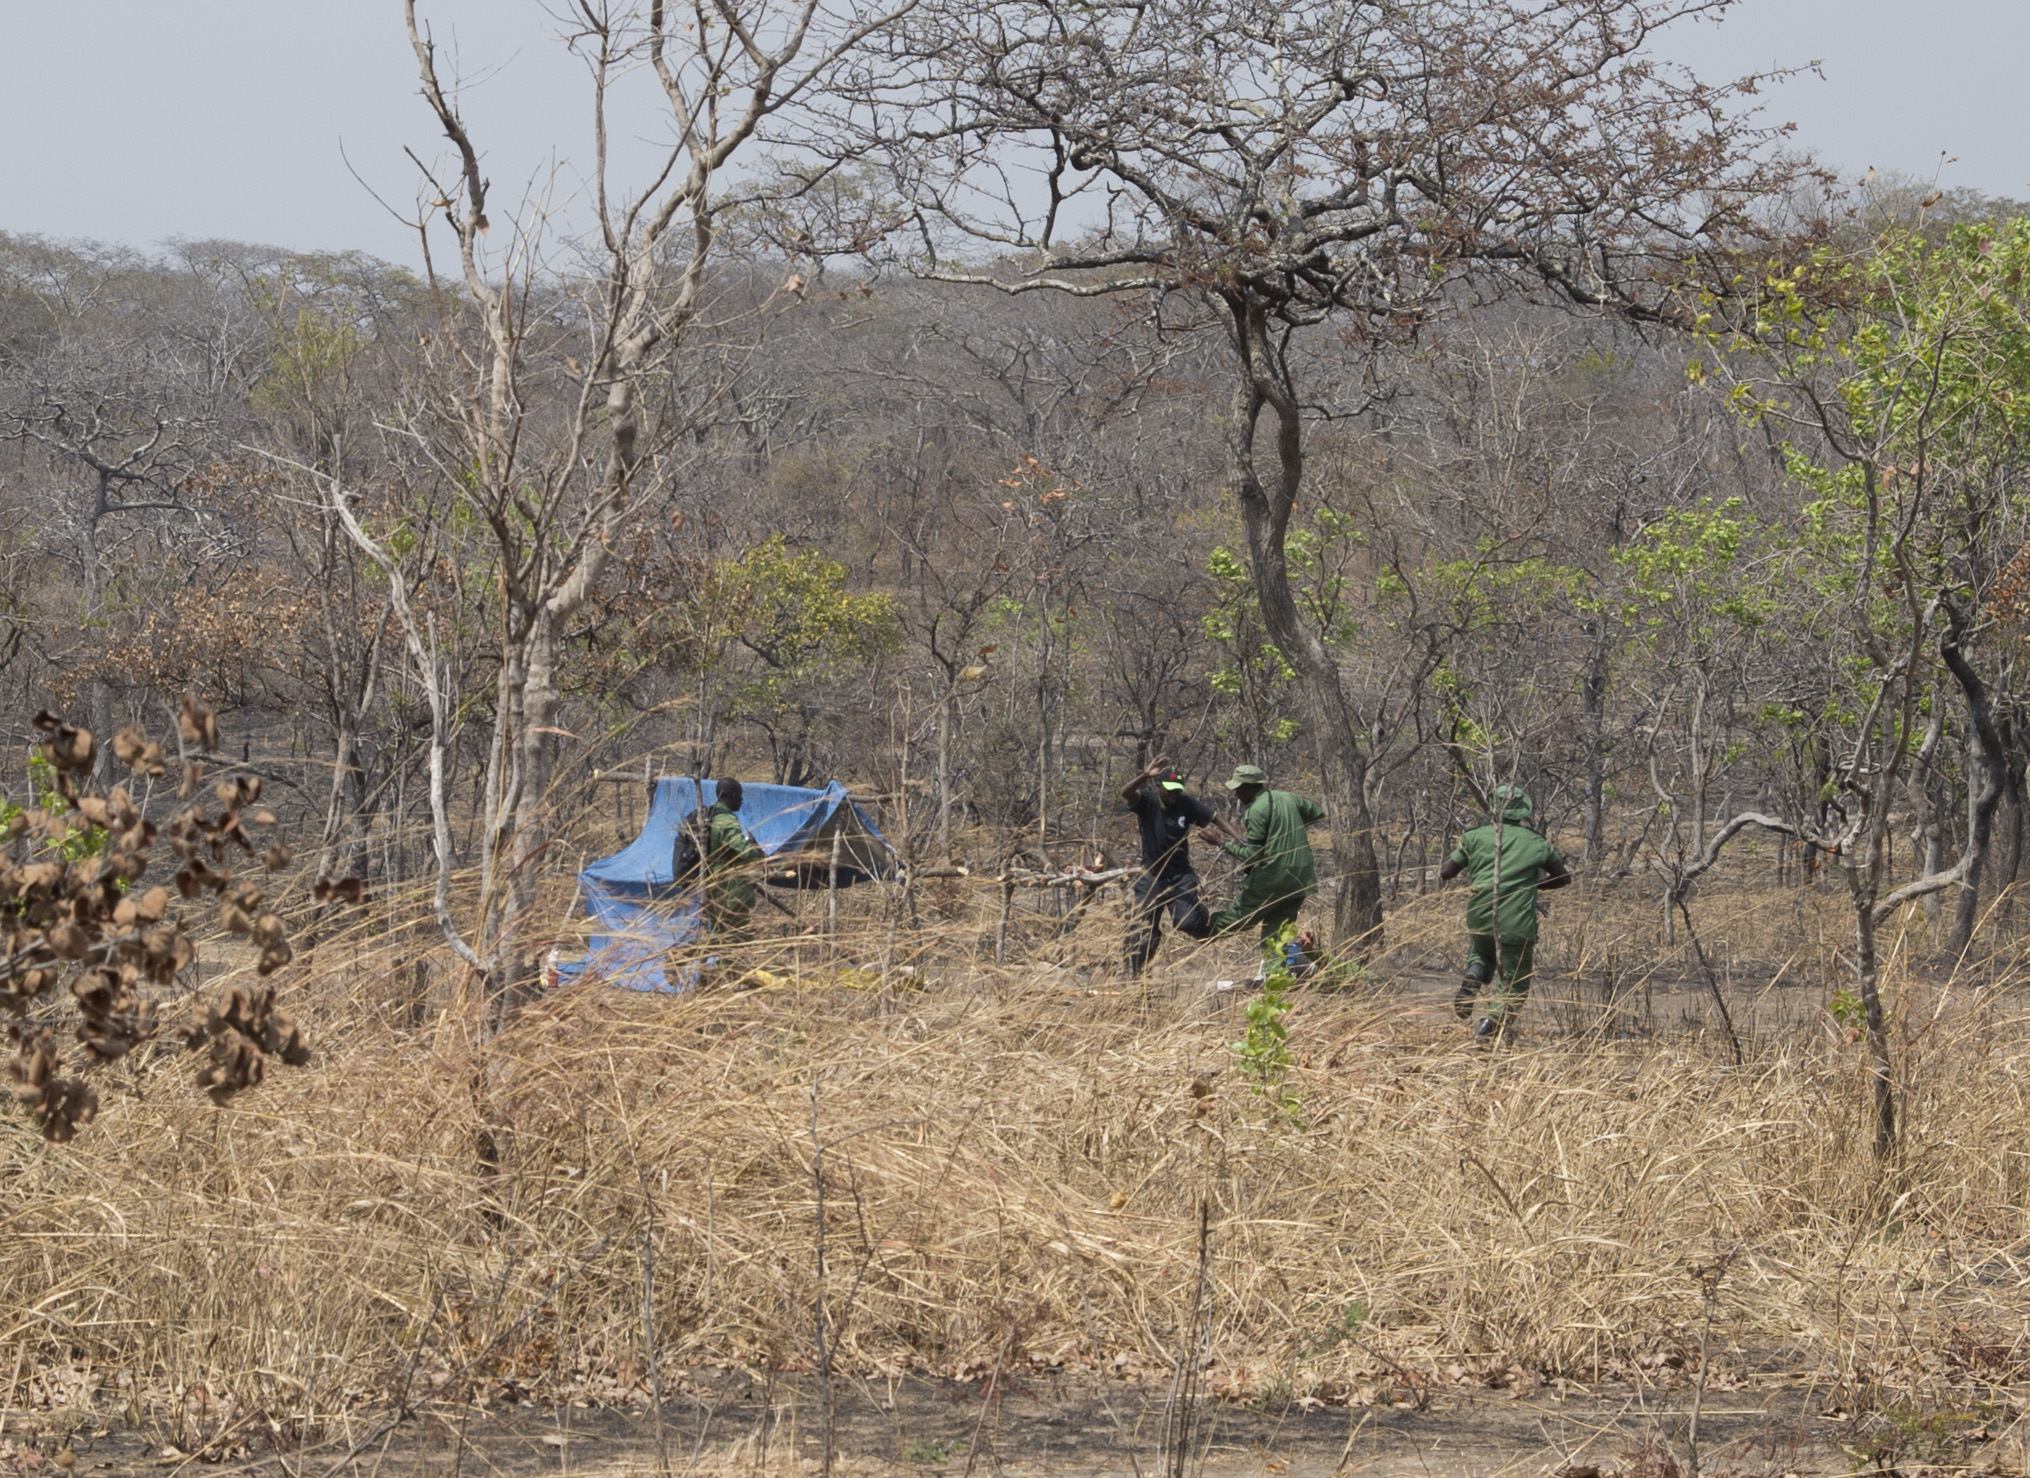 Tanzania rangers raid a mock poacher camp and apprehend the simulated illegal hunters during a demonstration August 24, 2016, at Rungwa Game Reserve, Tanzania. Rangers recently trained with members of the 403rd Civil Affairs Battalion, a component of Combined Joint Task Force - Horn of Africa, and North Carolina Army National Guard to learn techniques to track and capture poachers. (U.S. Air Force photos by Staff Sgt. Eric Summers Jr.)